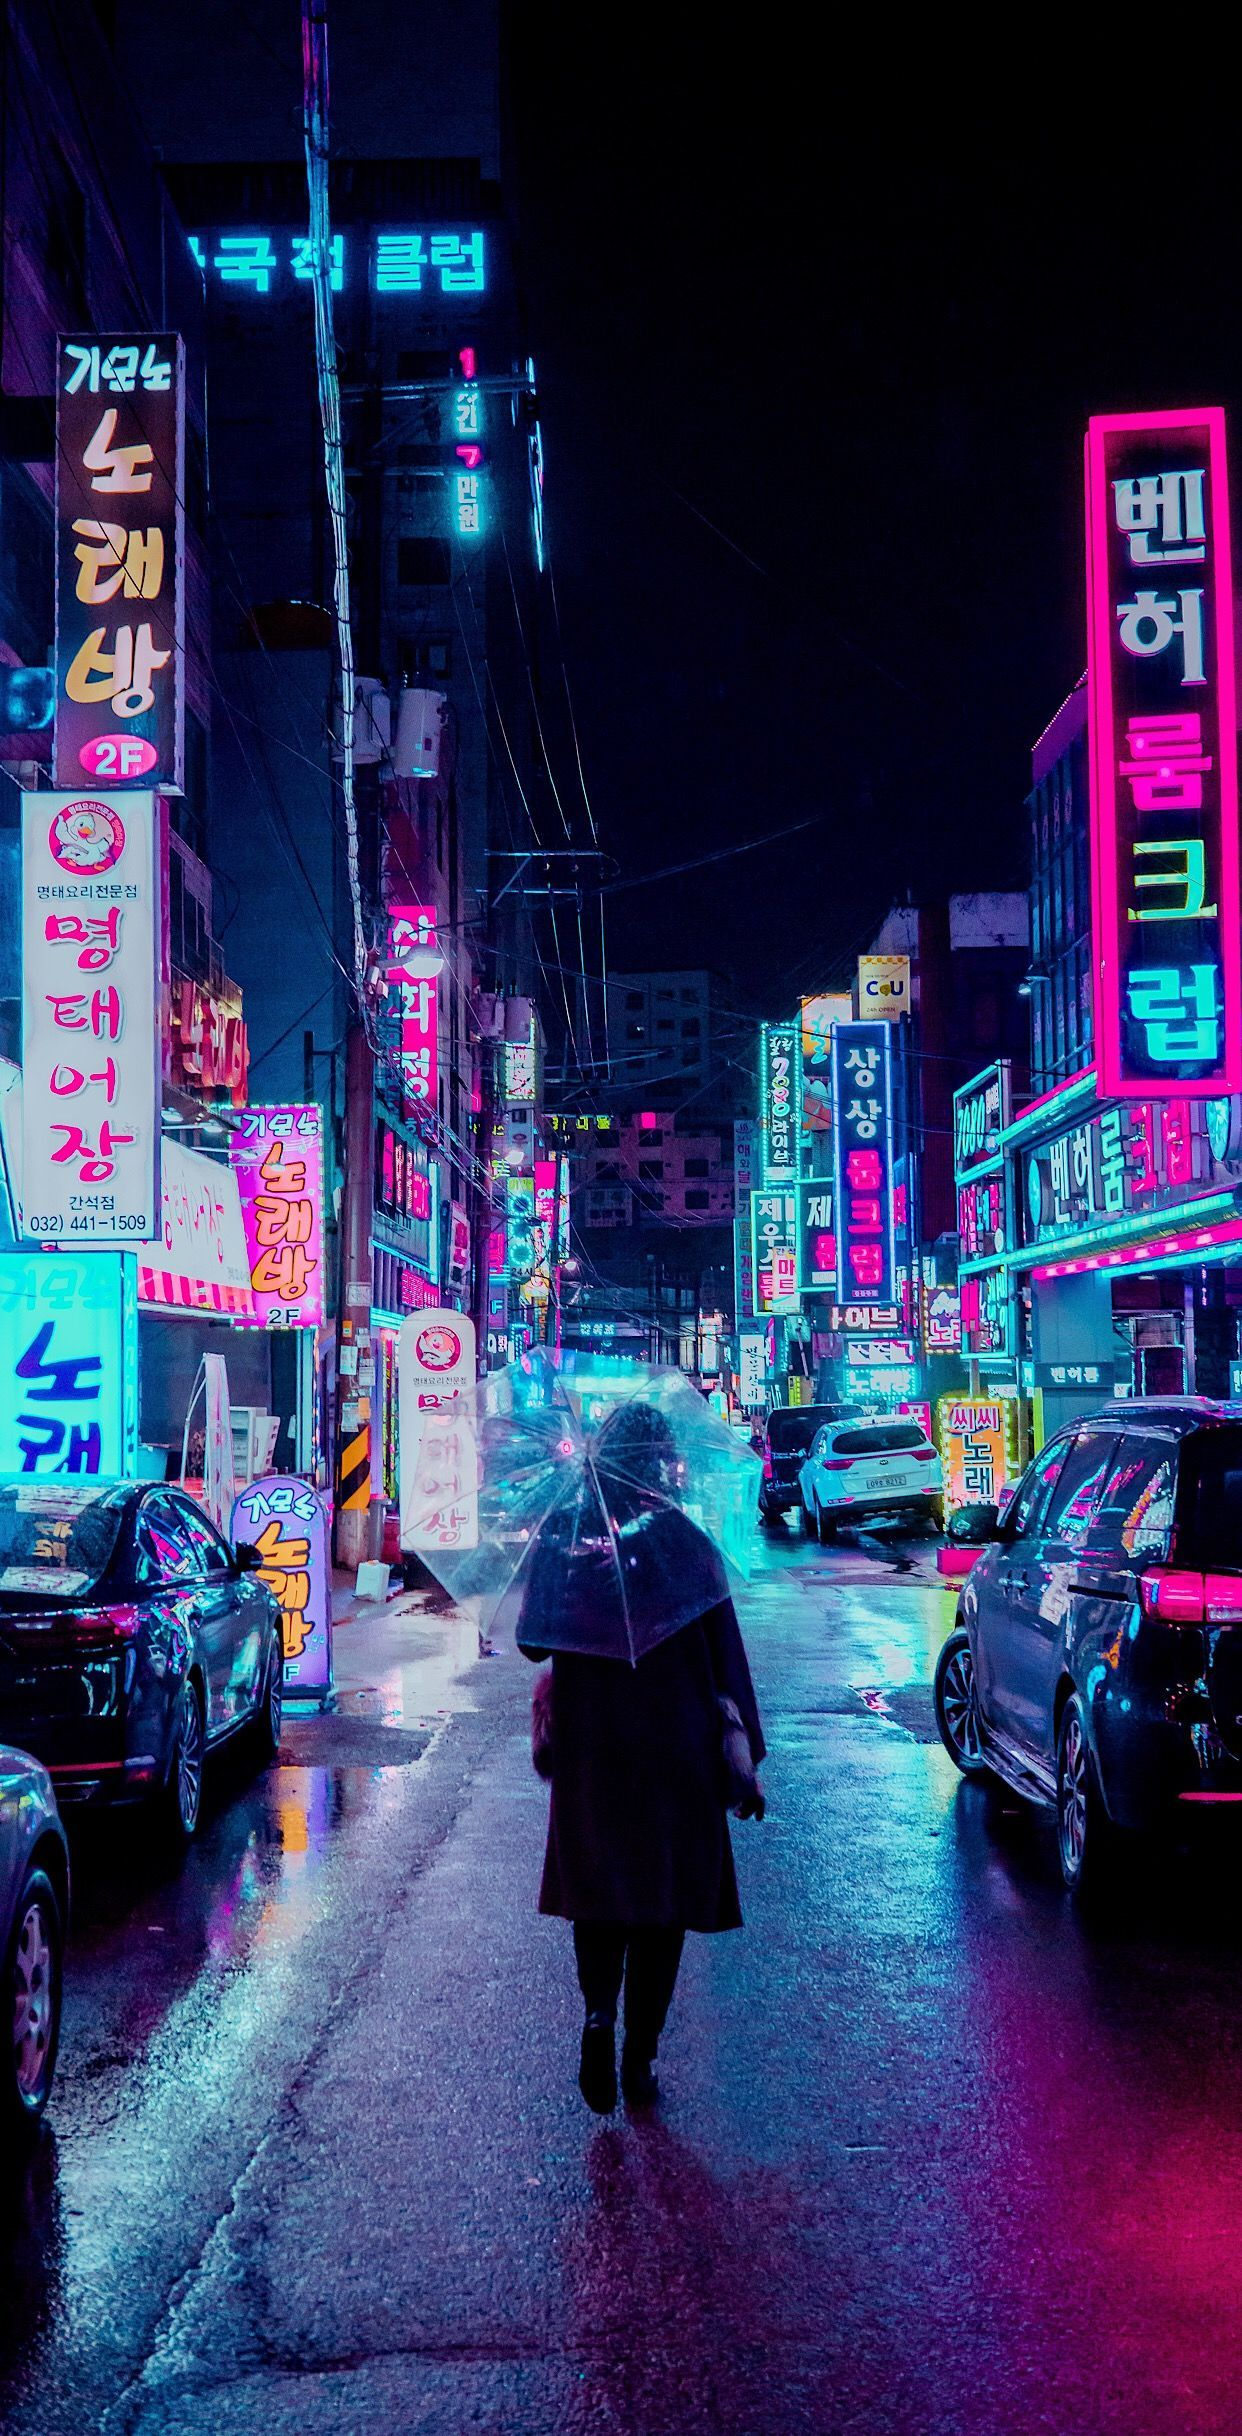 Neon City Phone Wallpapers Top Free Neon City Phone Backgrounds Wallpaperaccess